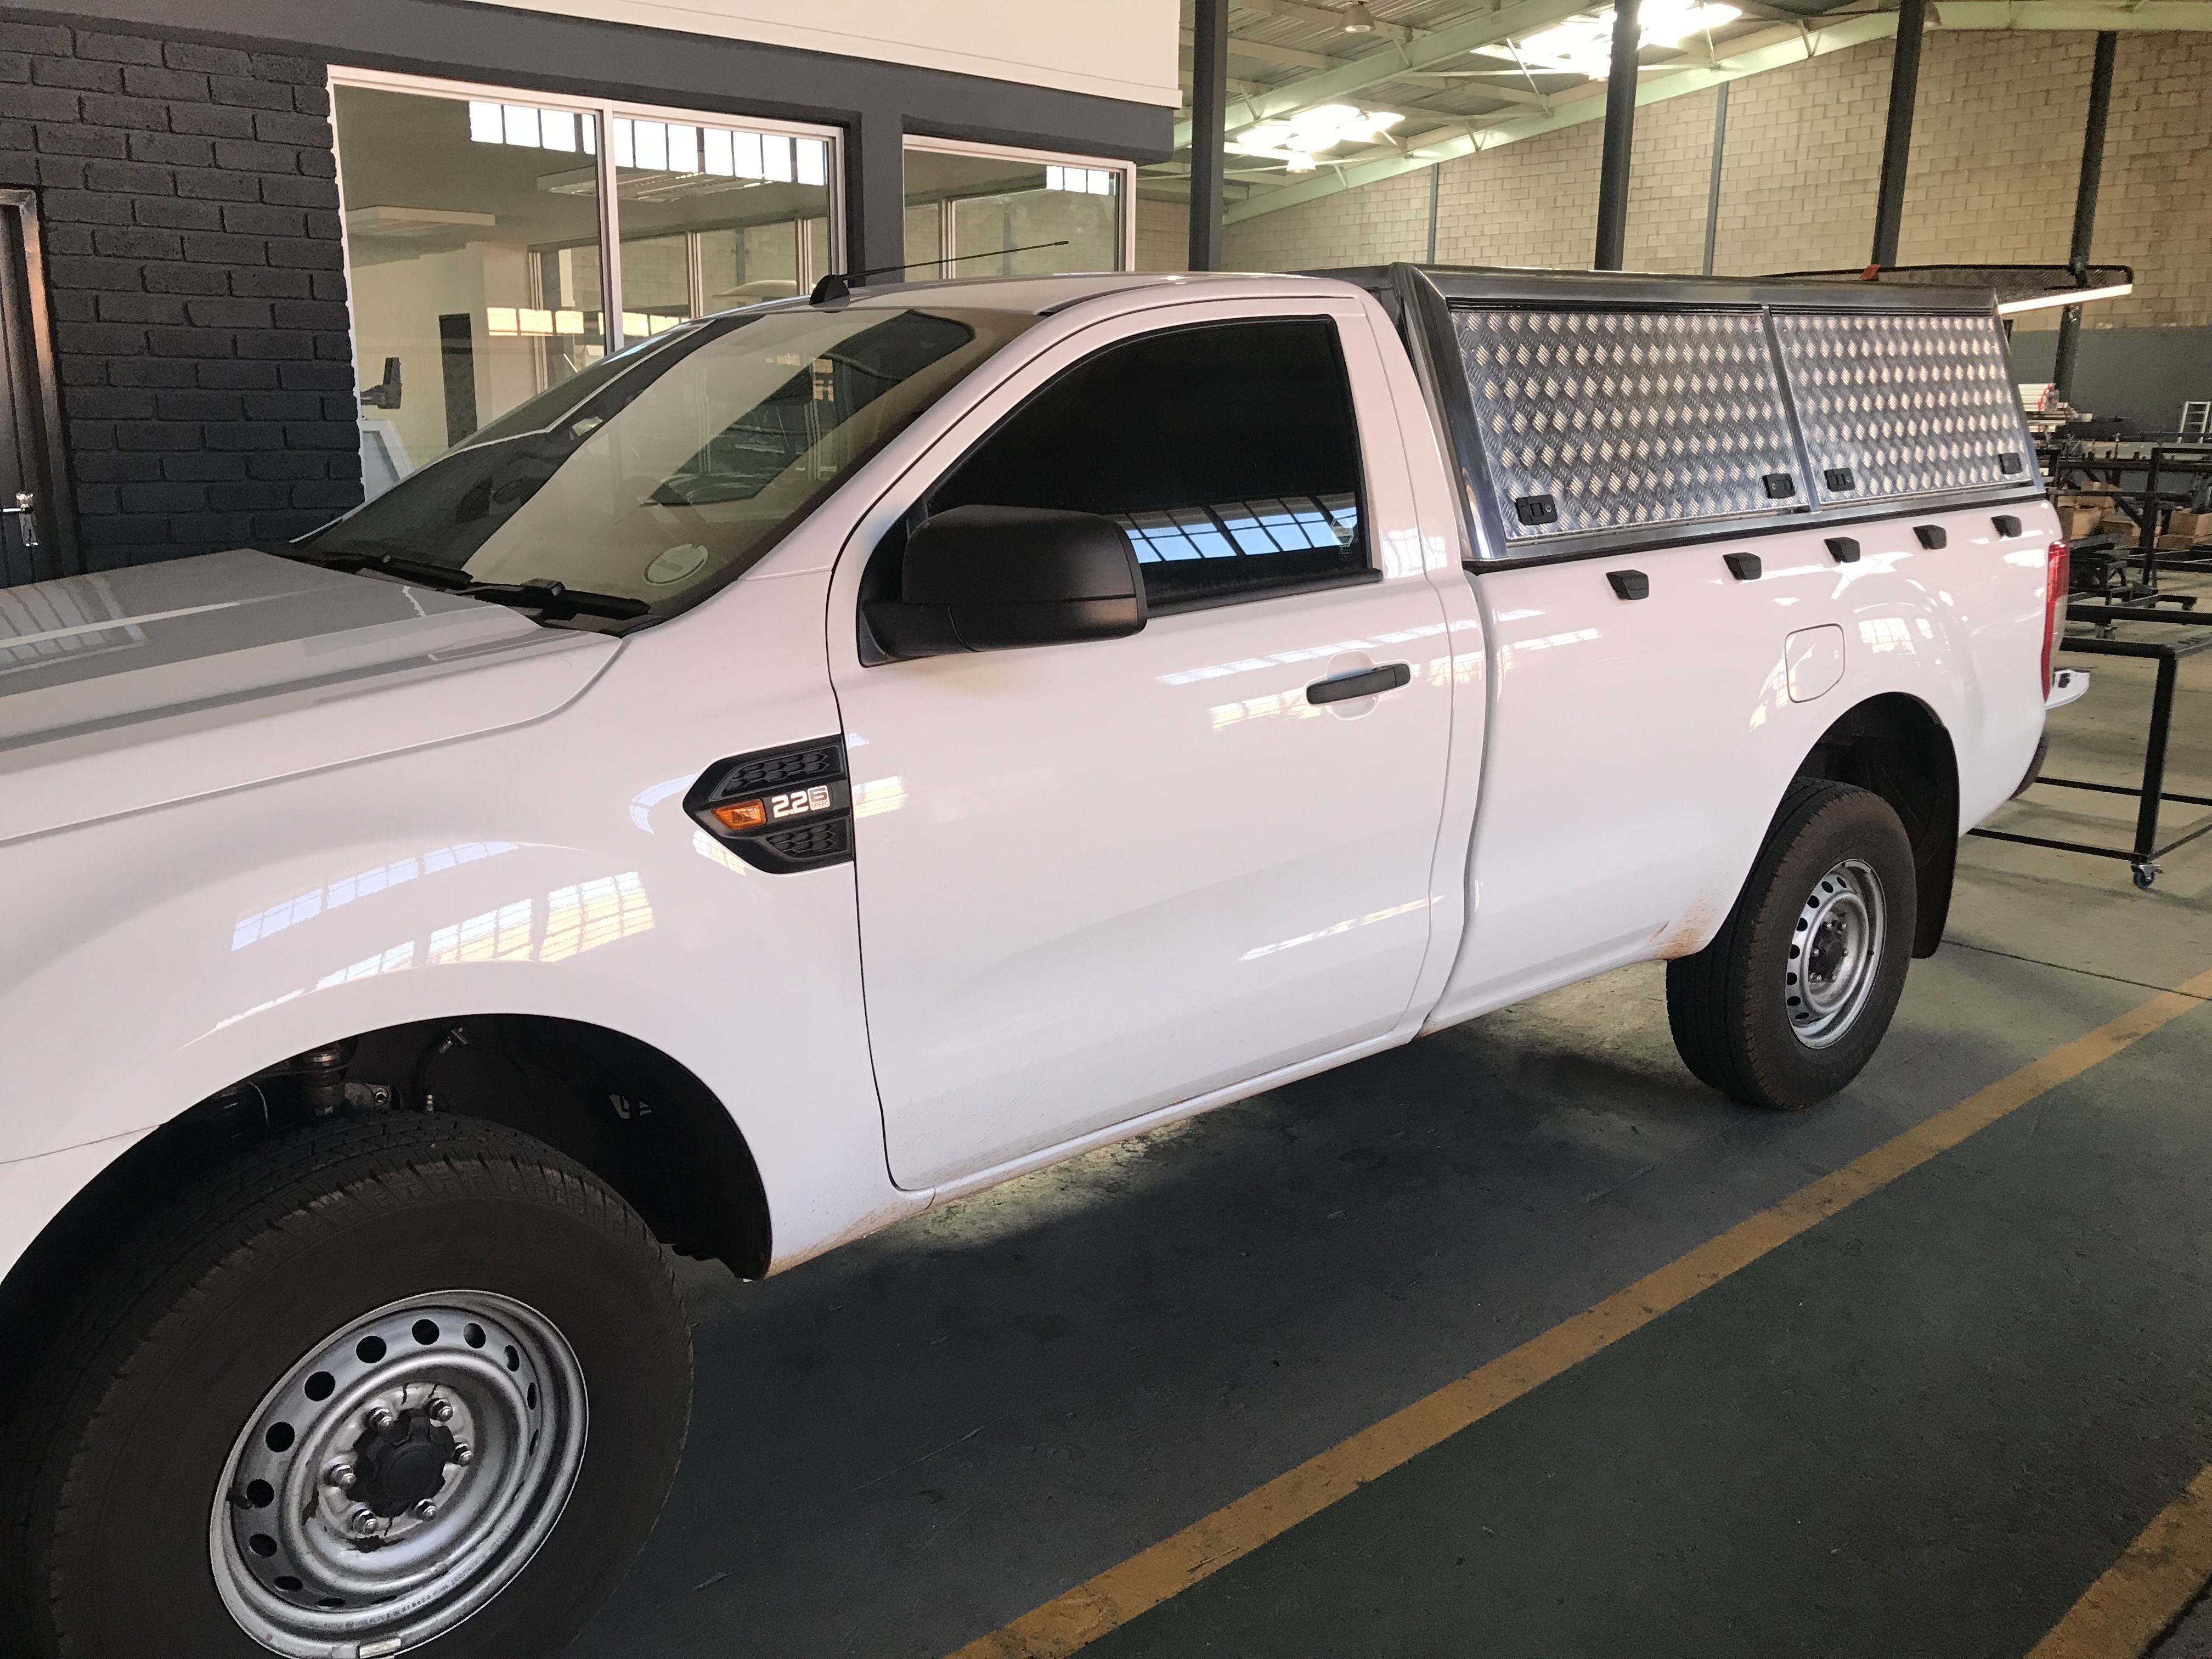 Single cab Ford Ranger Entry Level